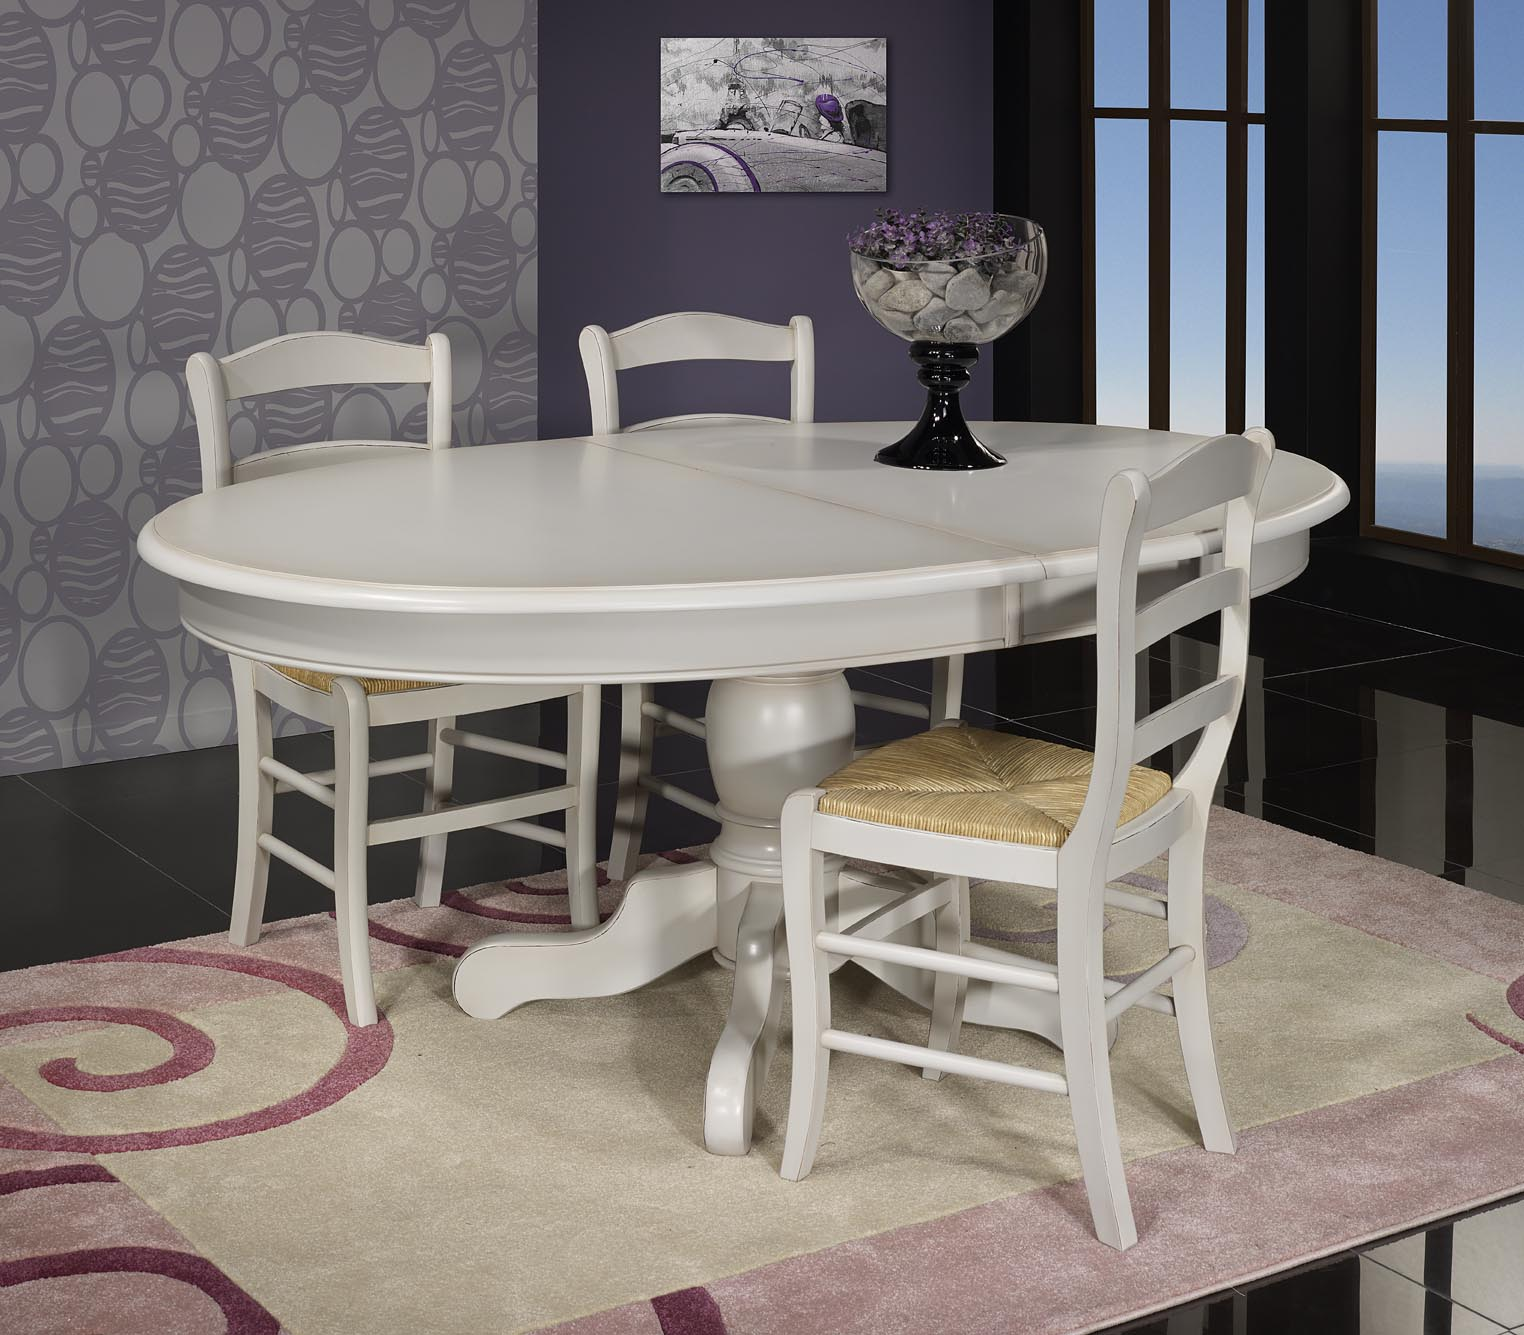 Table ovale 135x110 pied central delphine en merisier massif de style louis p - Table ovale design pied central ...